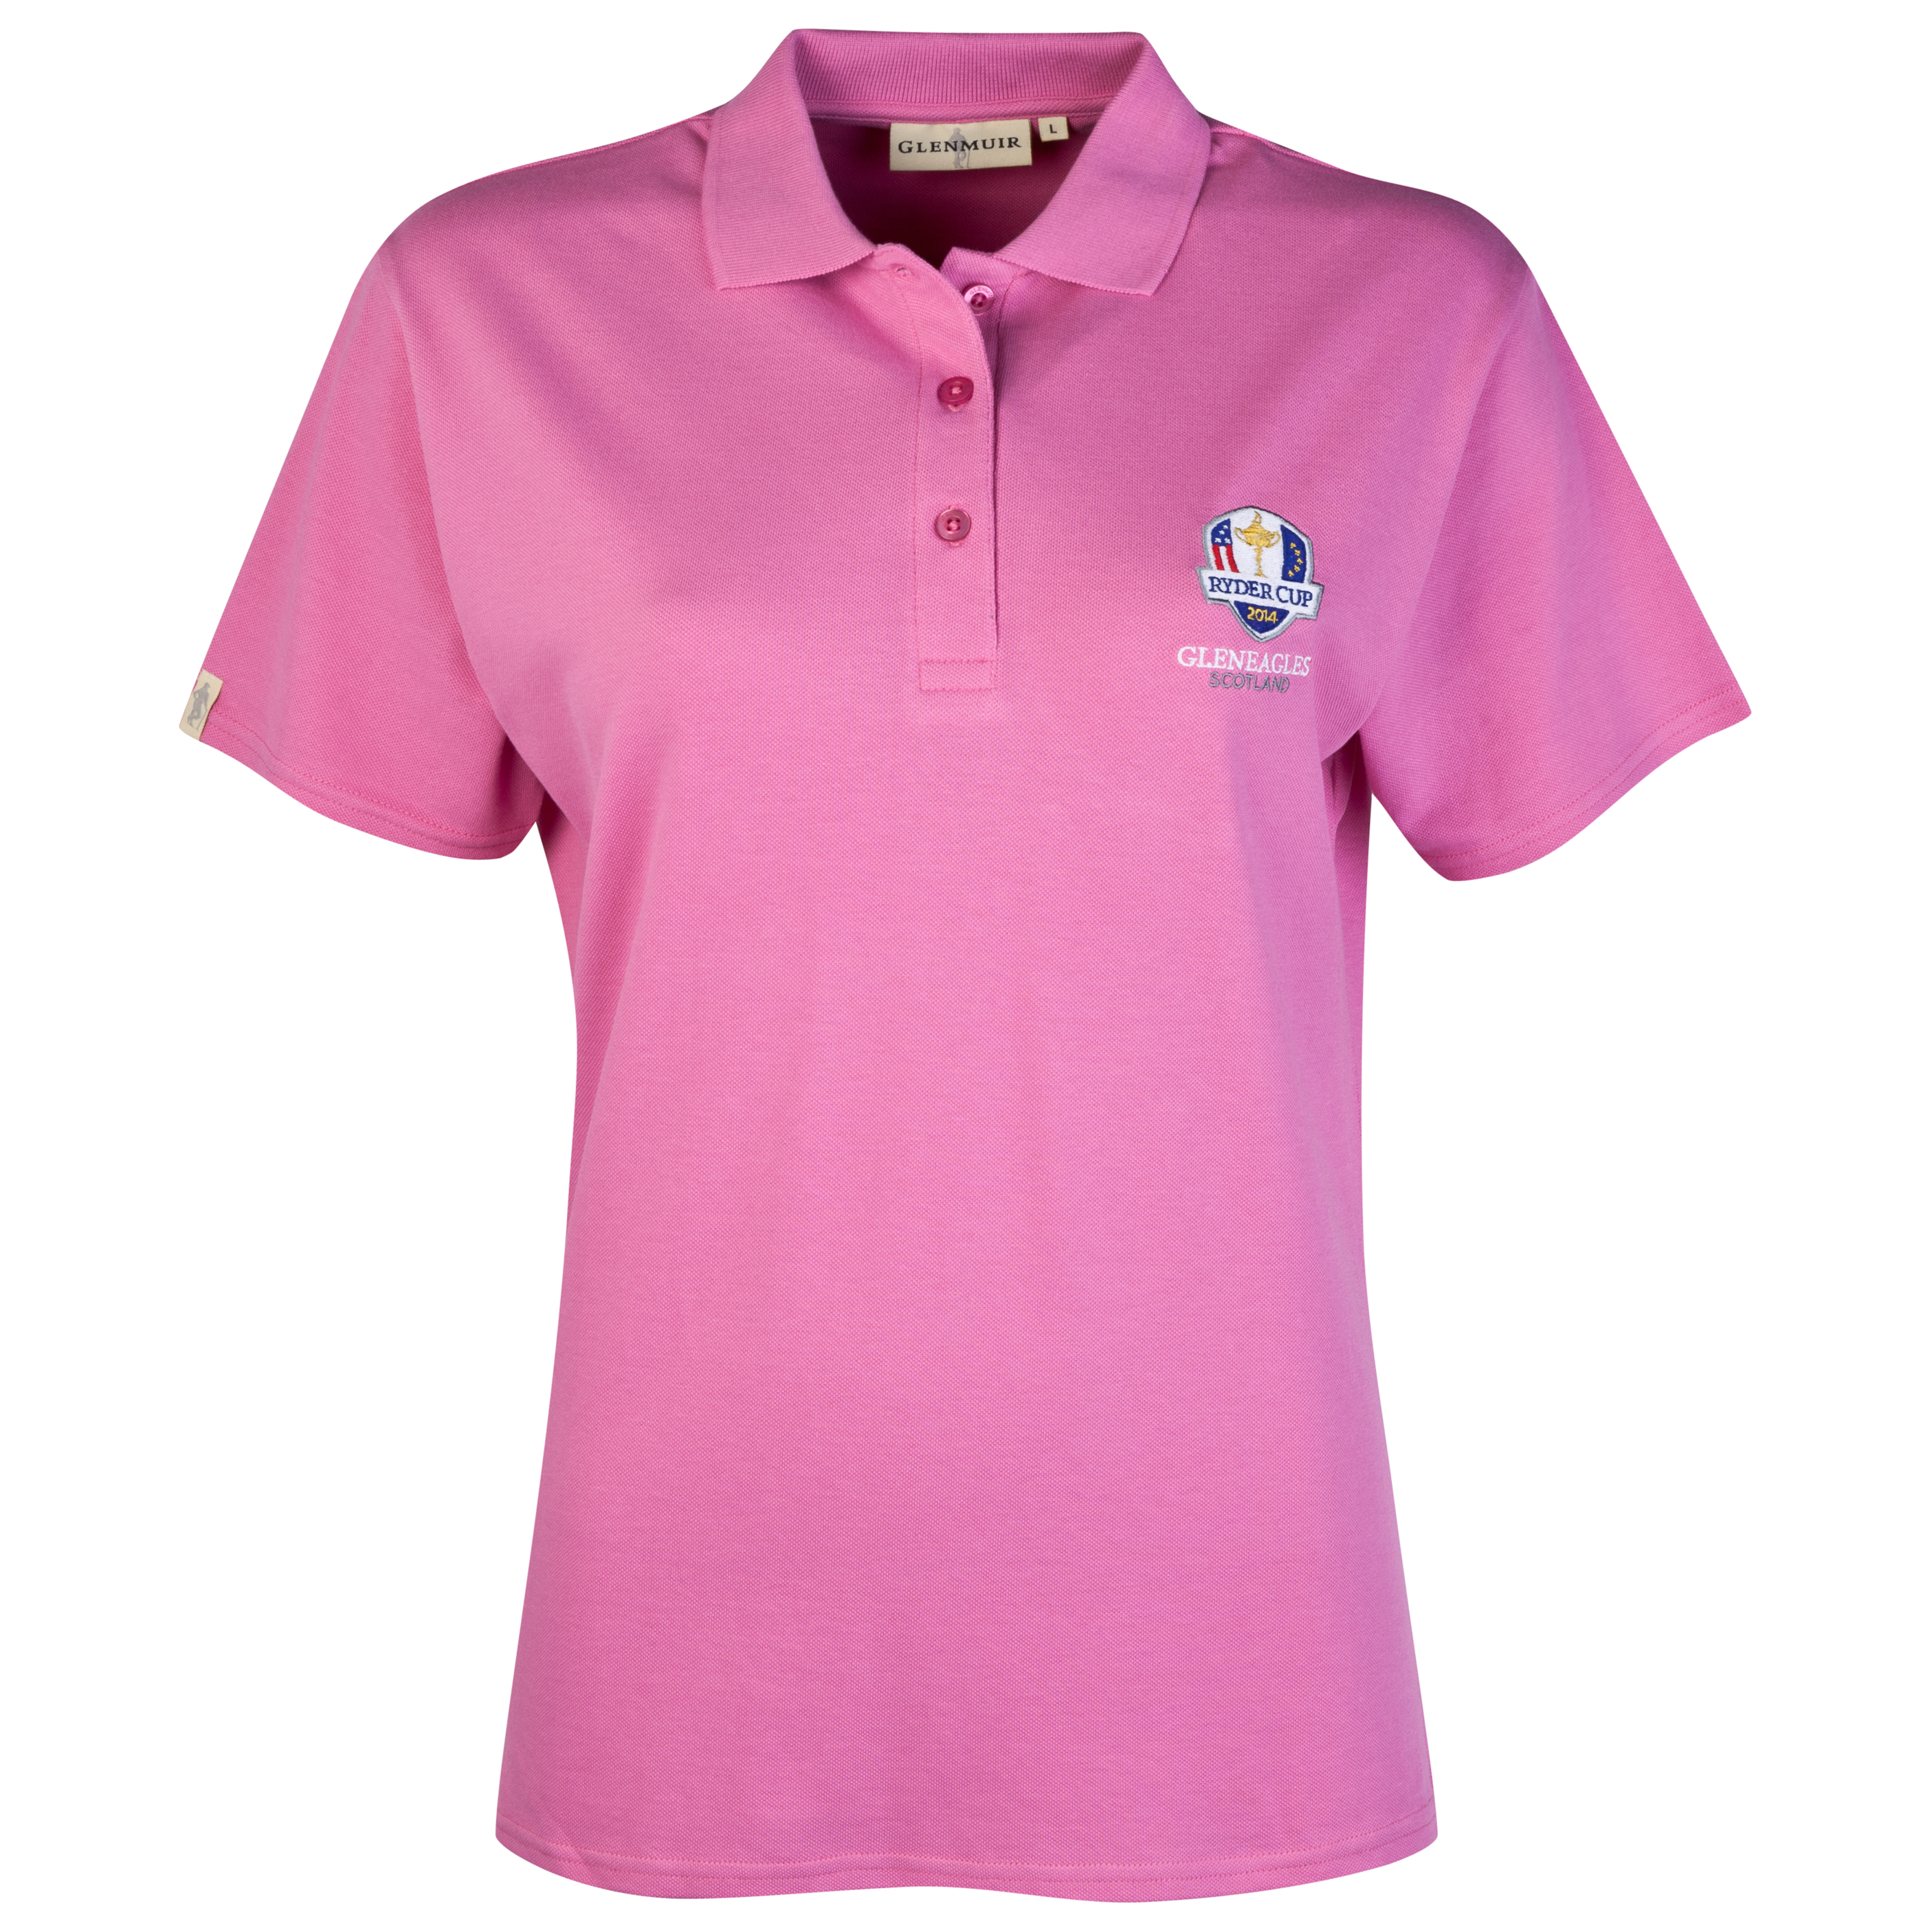 The 2014 Ryder Cup Glenmuir Sophie Womens Polo - Hot Pink